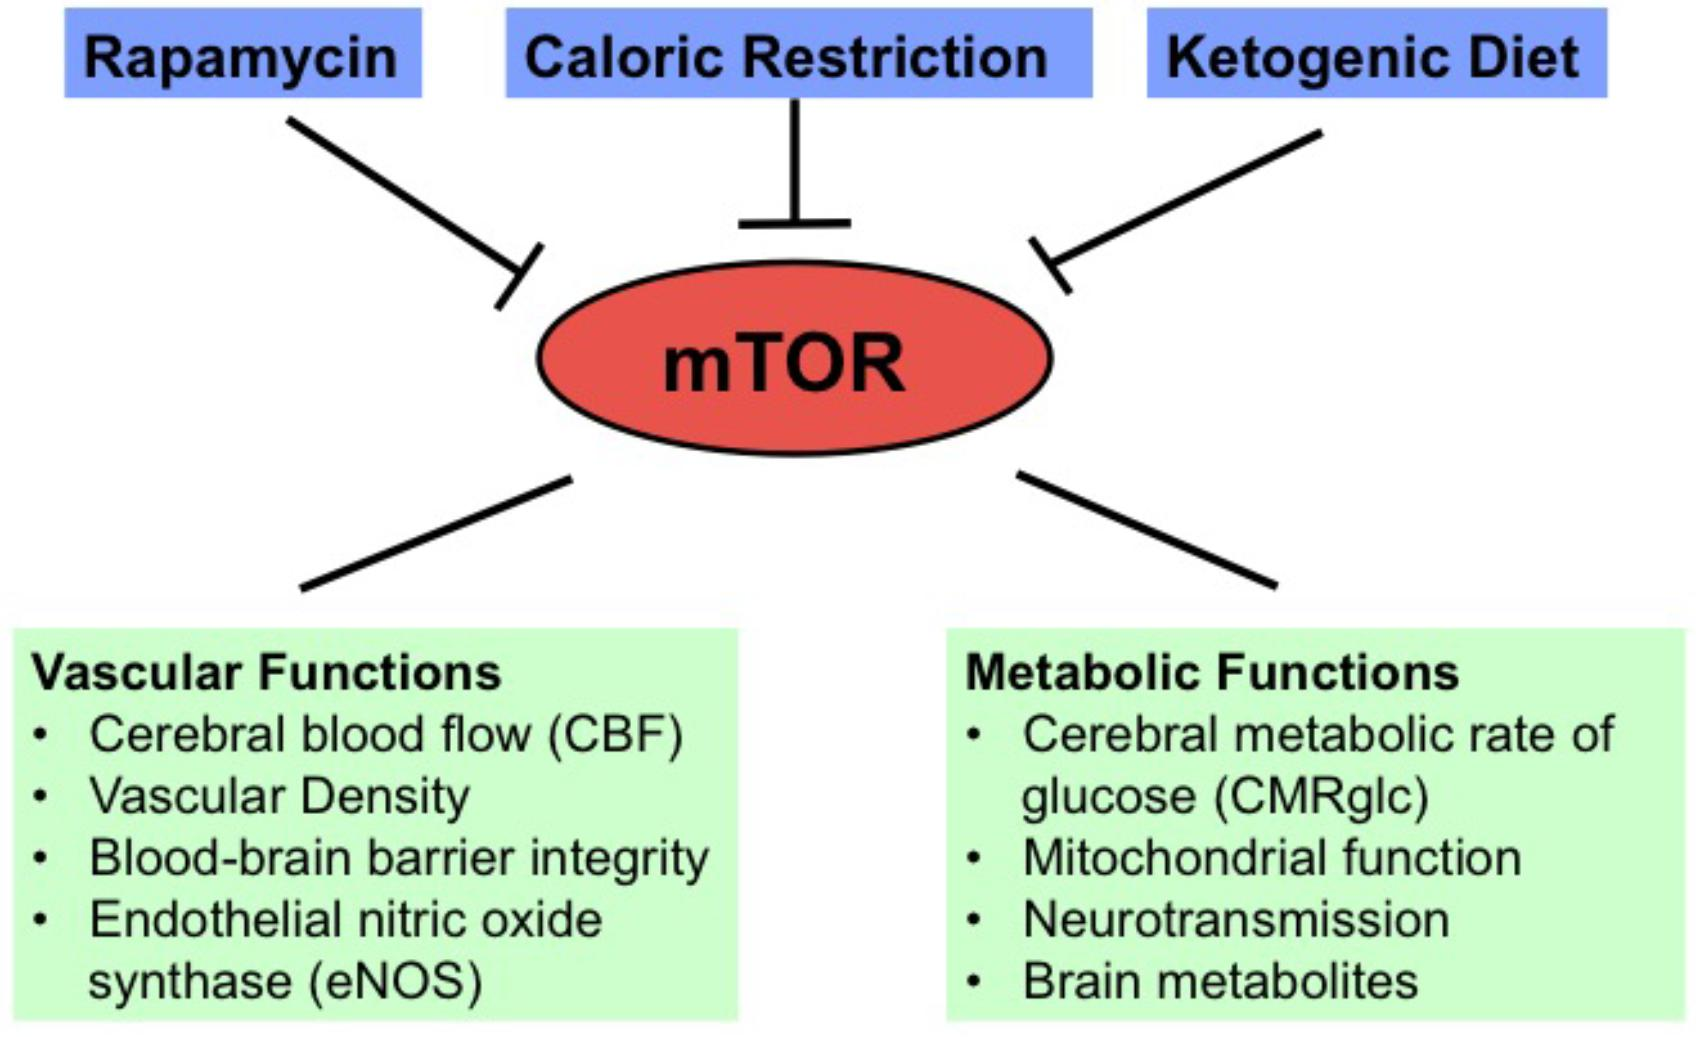 Frontiers | Neuroimaging Biomarkers of mTOR Inhibition on Vascular